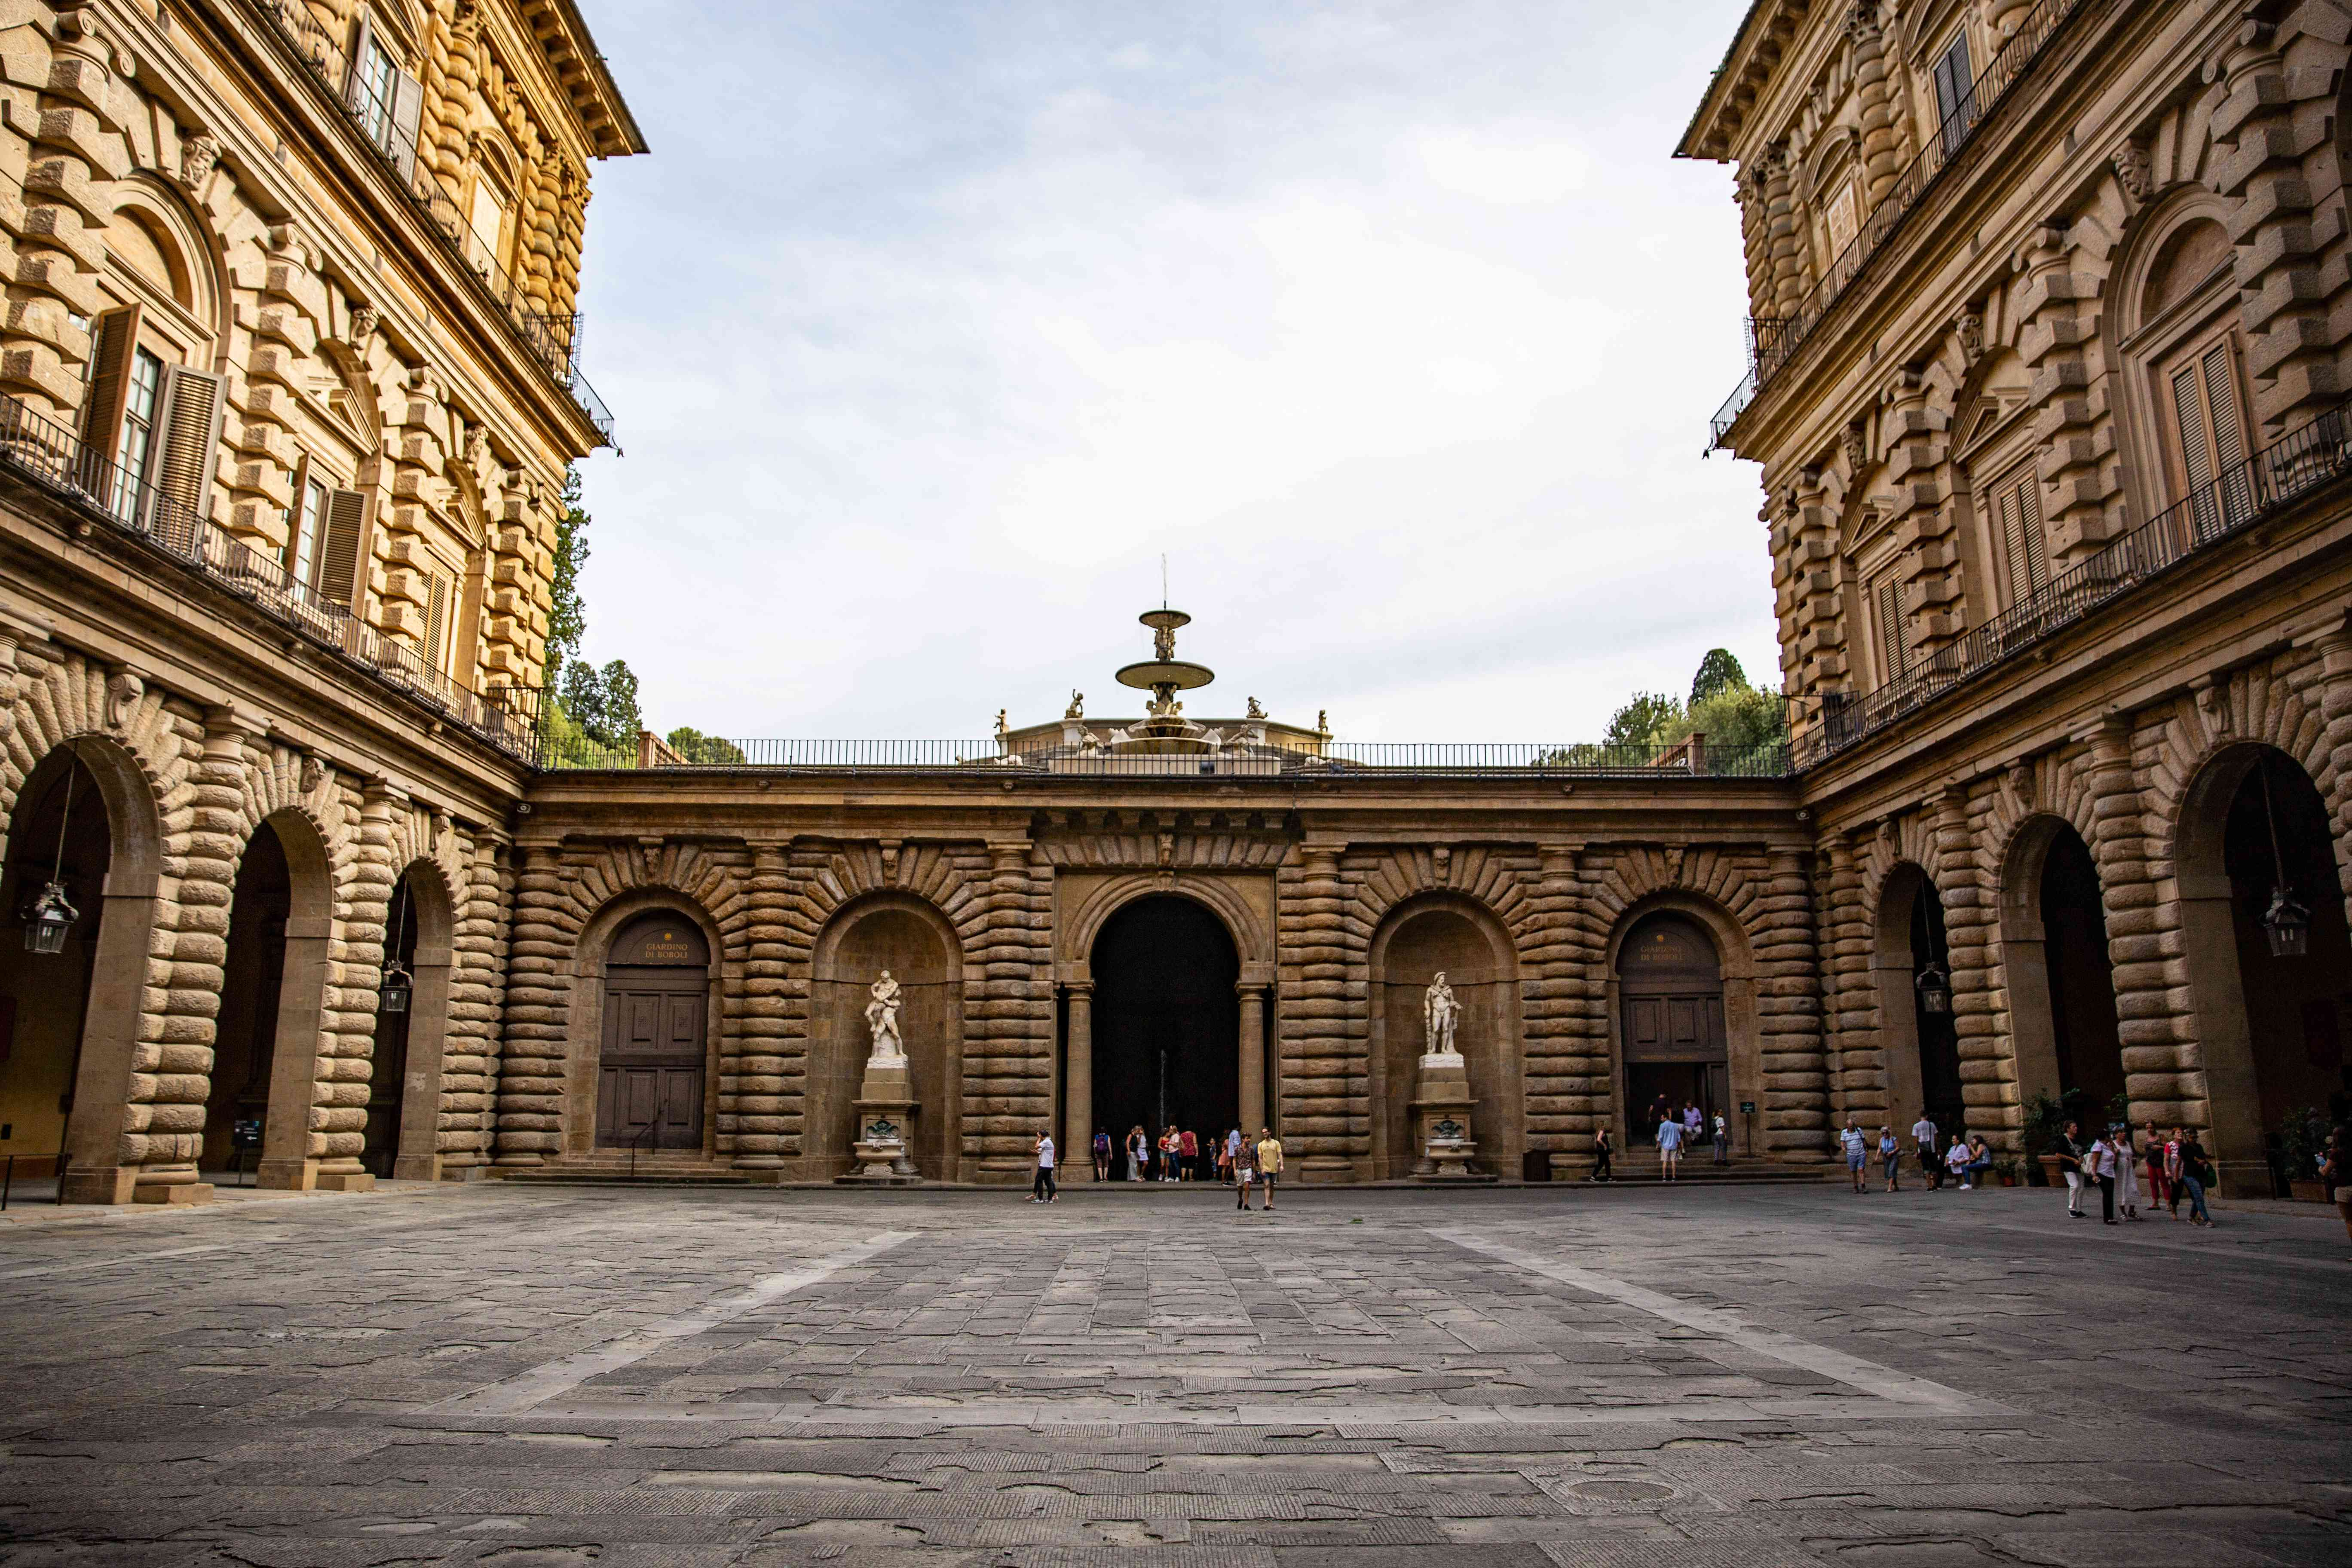 The Pitti Palace in Florence, Italy